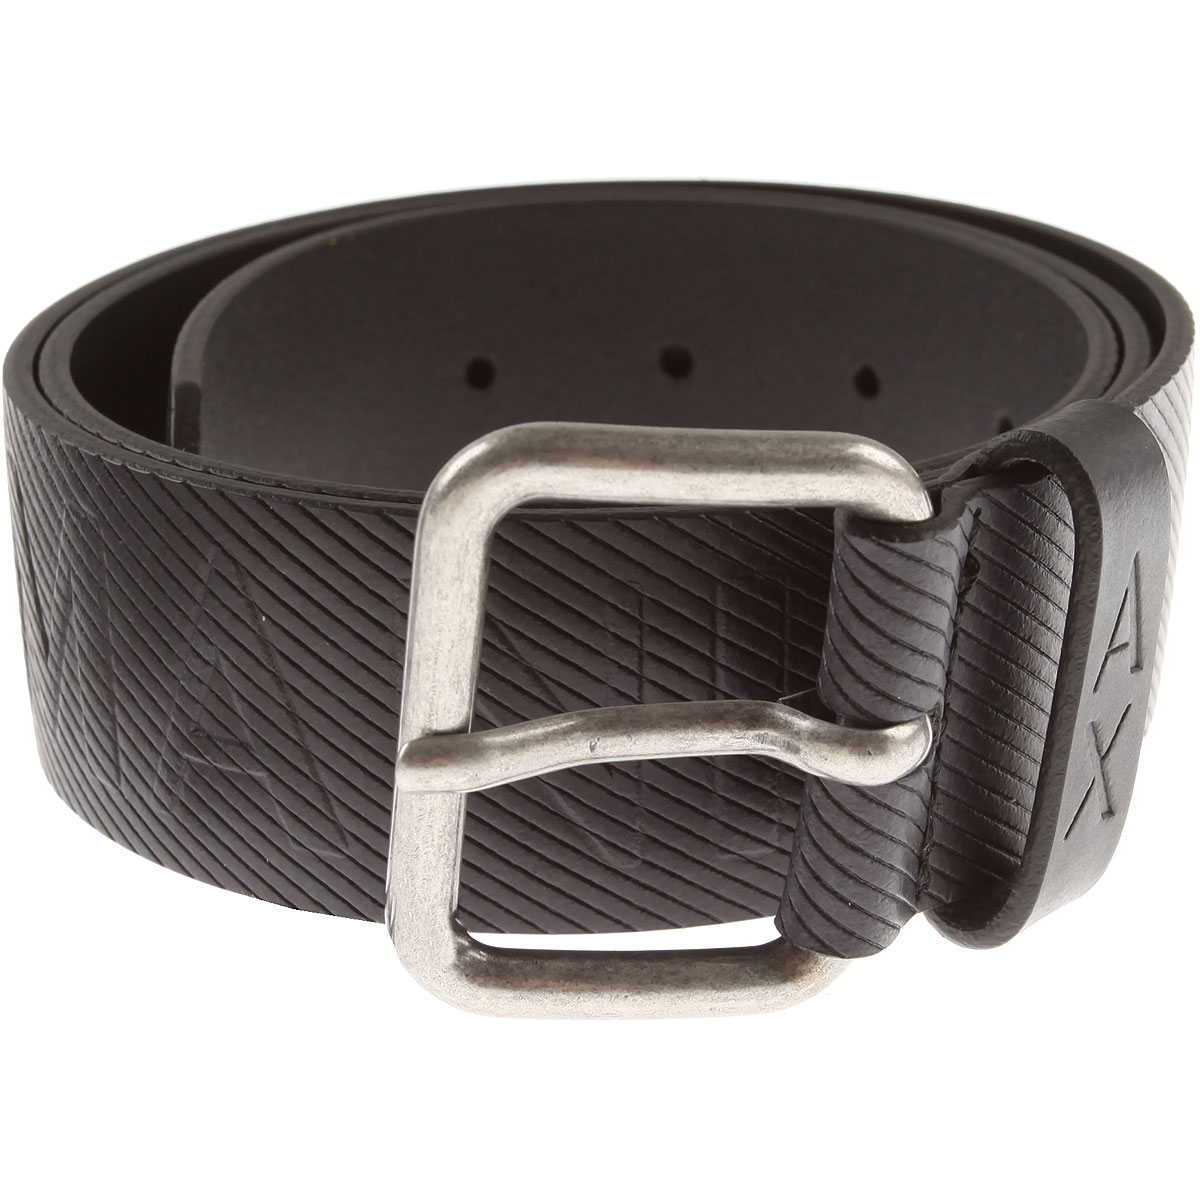 Image of Armani Jeans Mens Belts, Black, Genuine Leather, 2017, 34 36 38 40